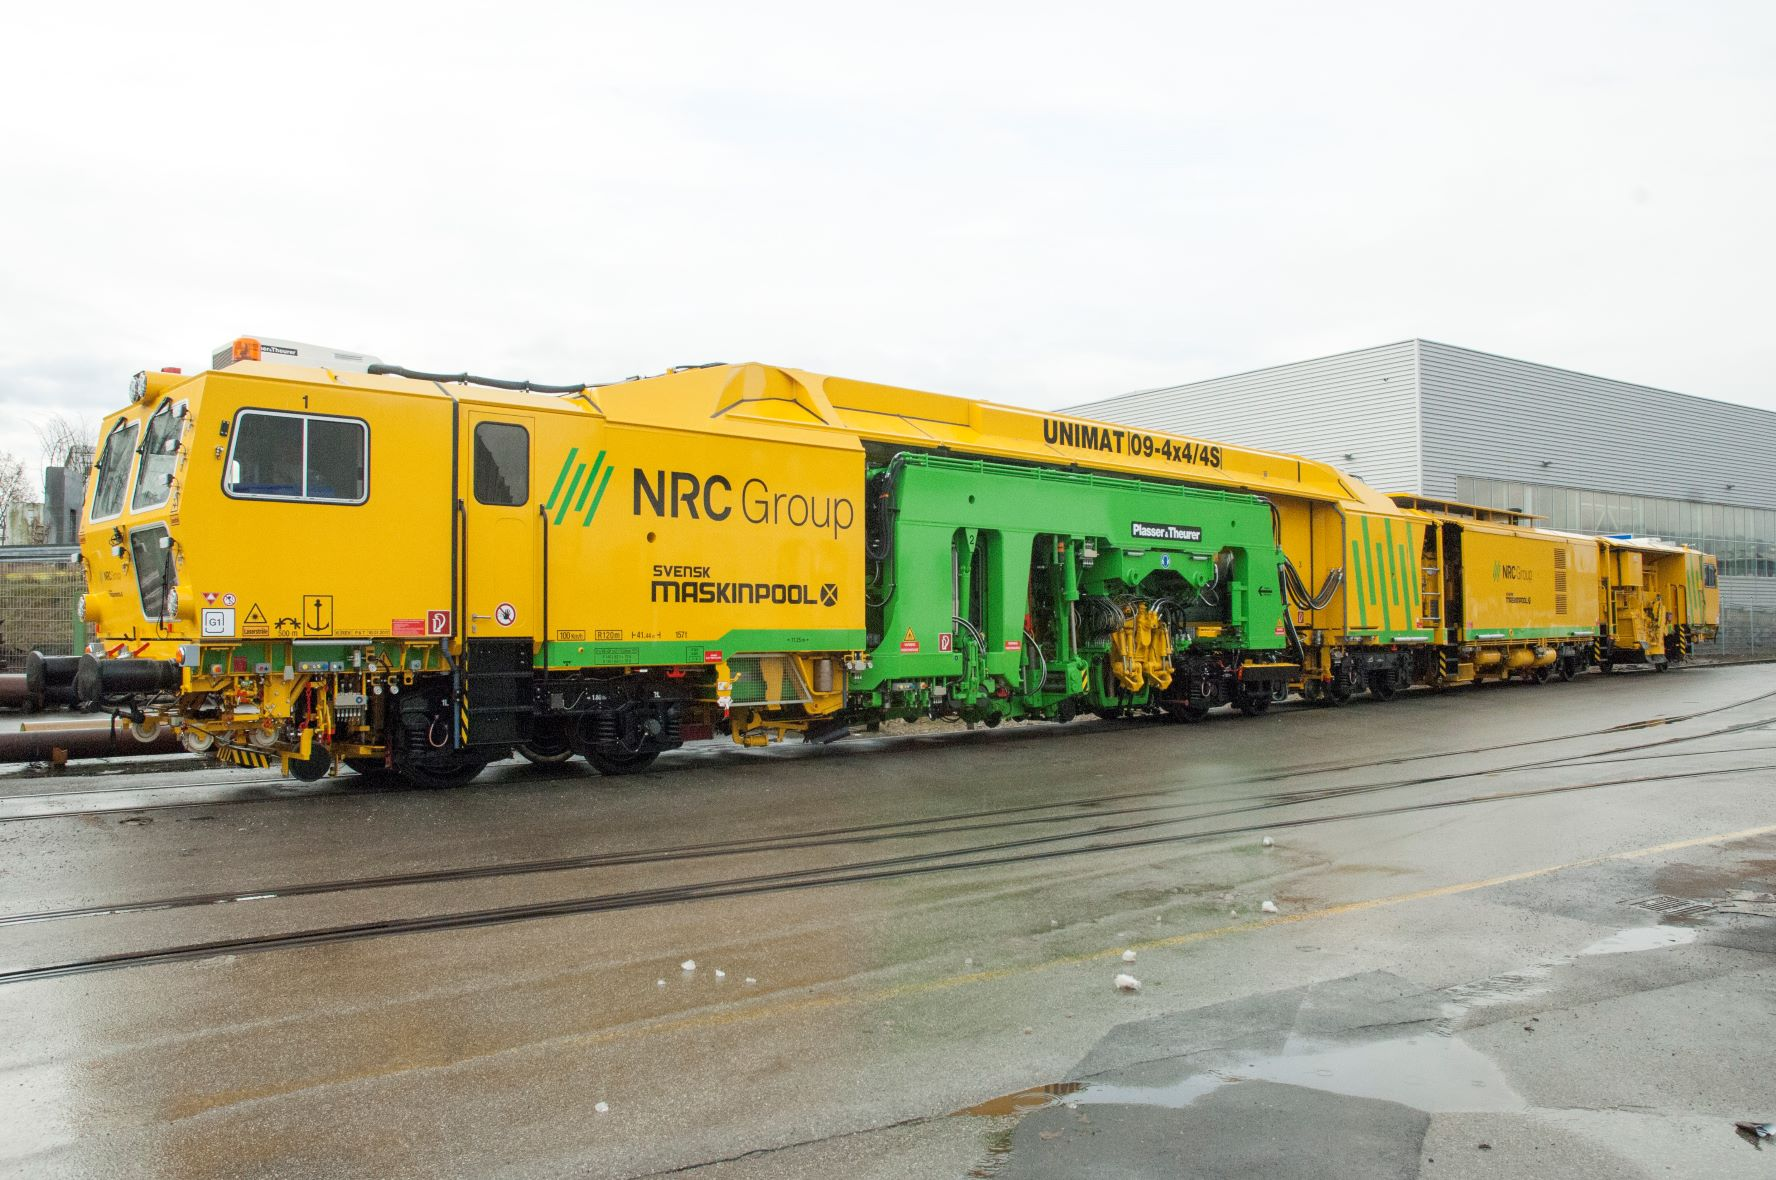 The yellow machines : Future technologies for higher comfort on and along the track